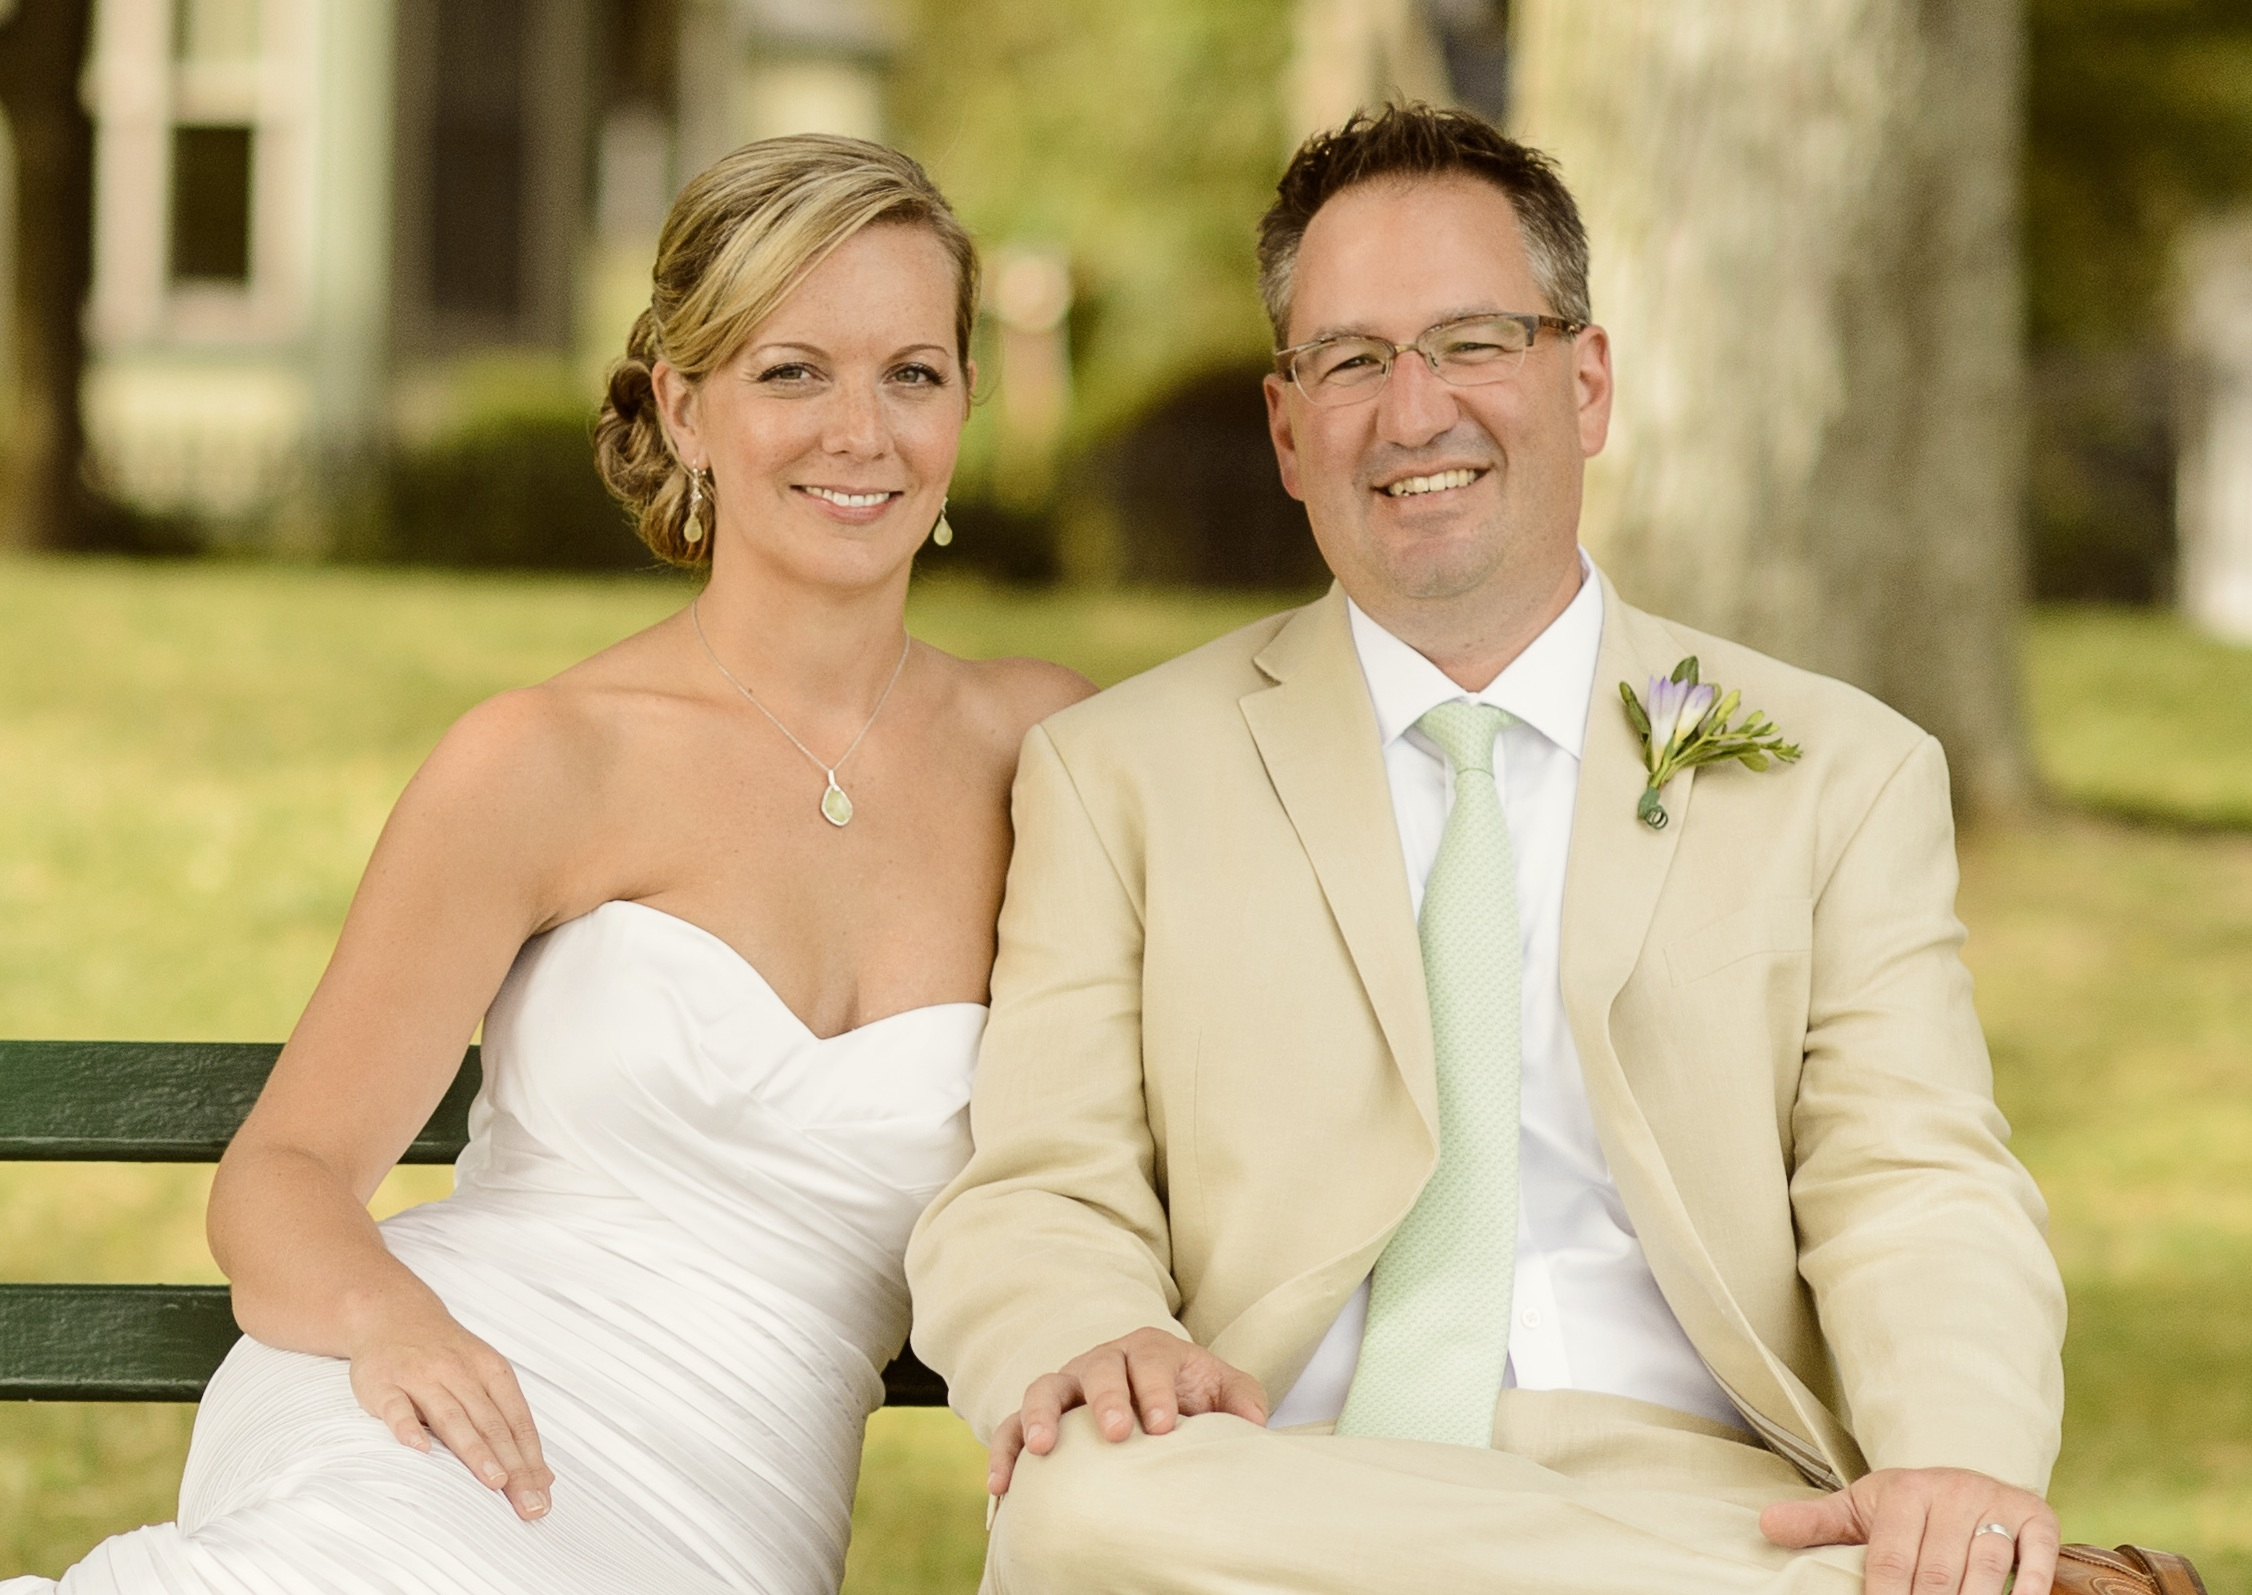 Sarah E. Talbot and Eric J. Nalbach are wed in Skaneateles